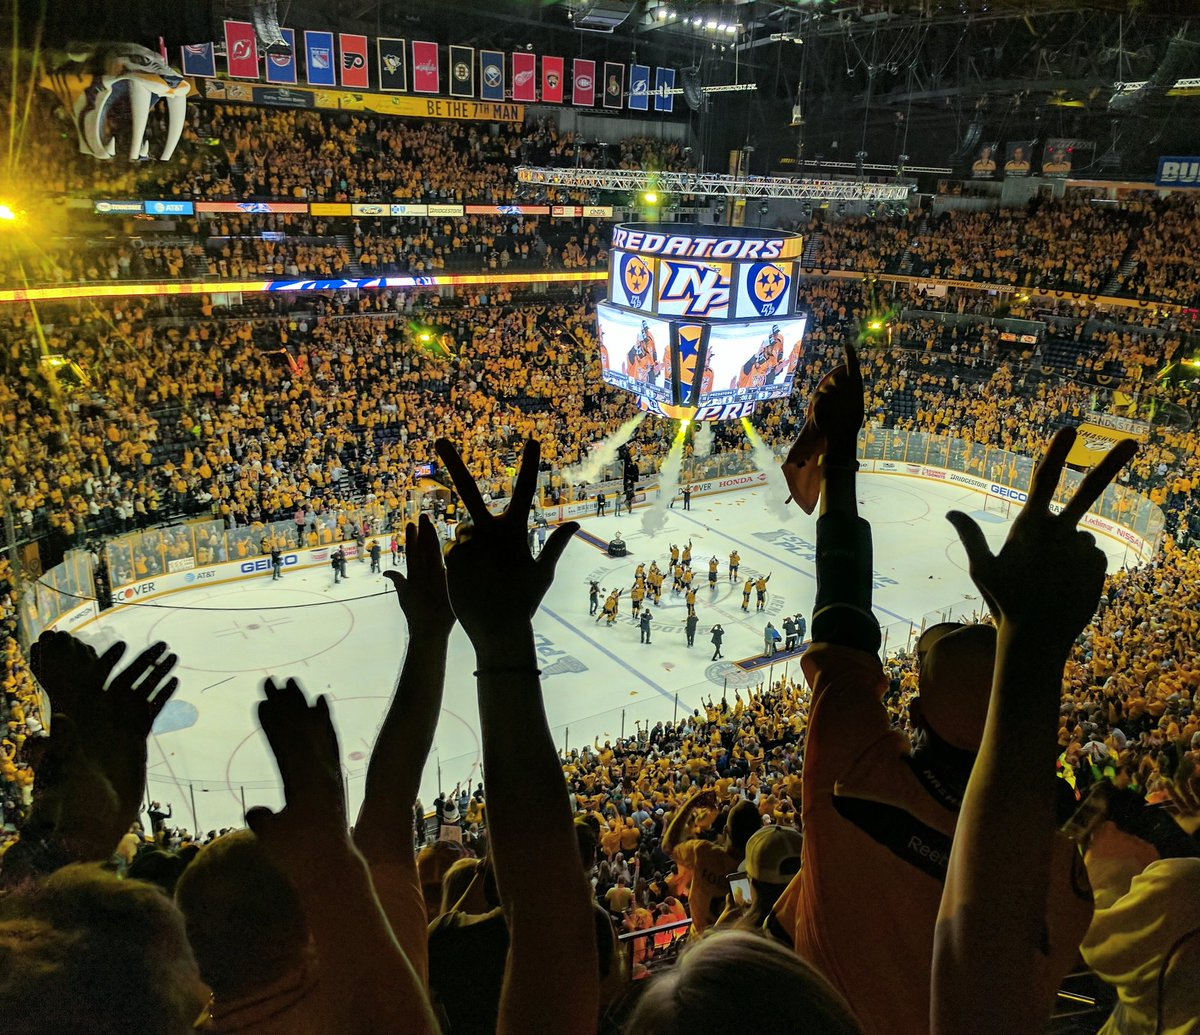 The Nashville Predators are your Western Conference CHAMPIONS!!!